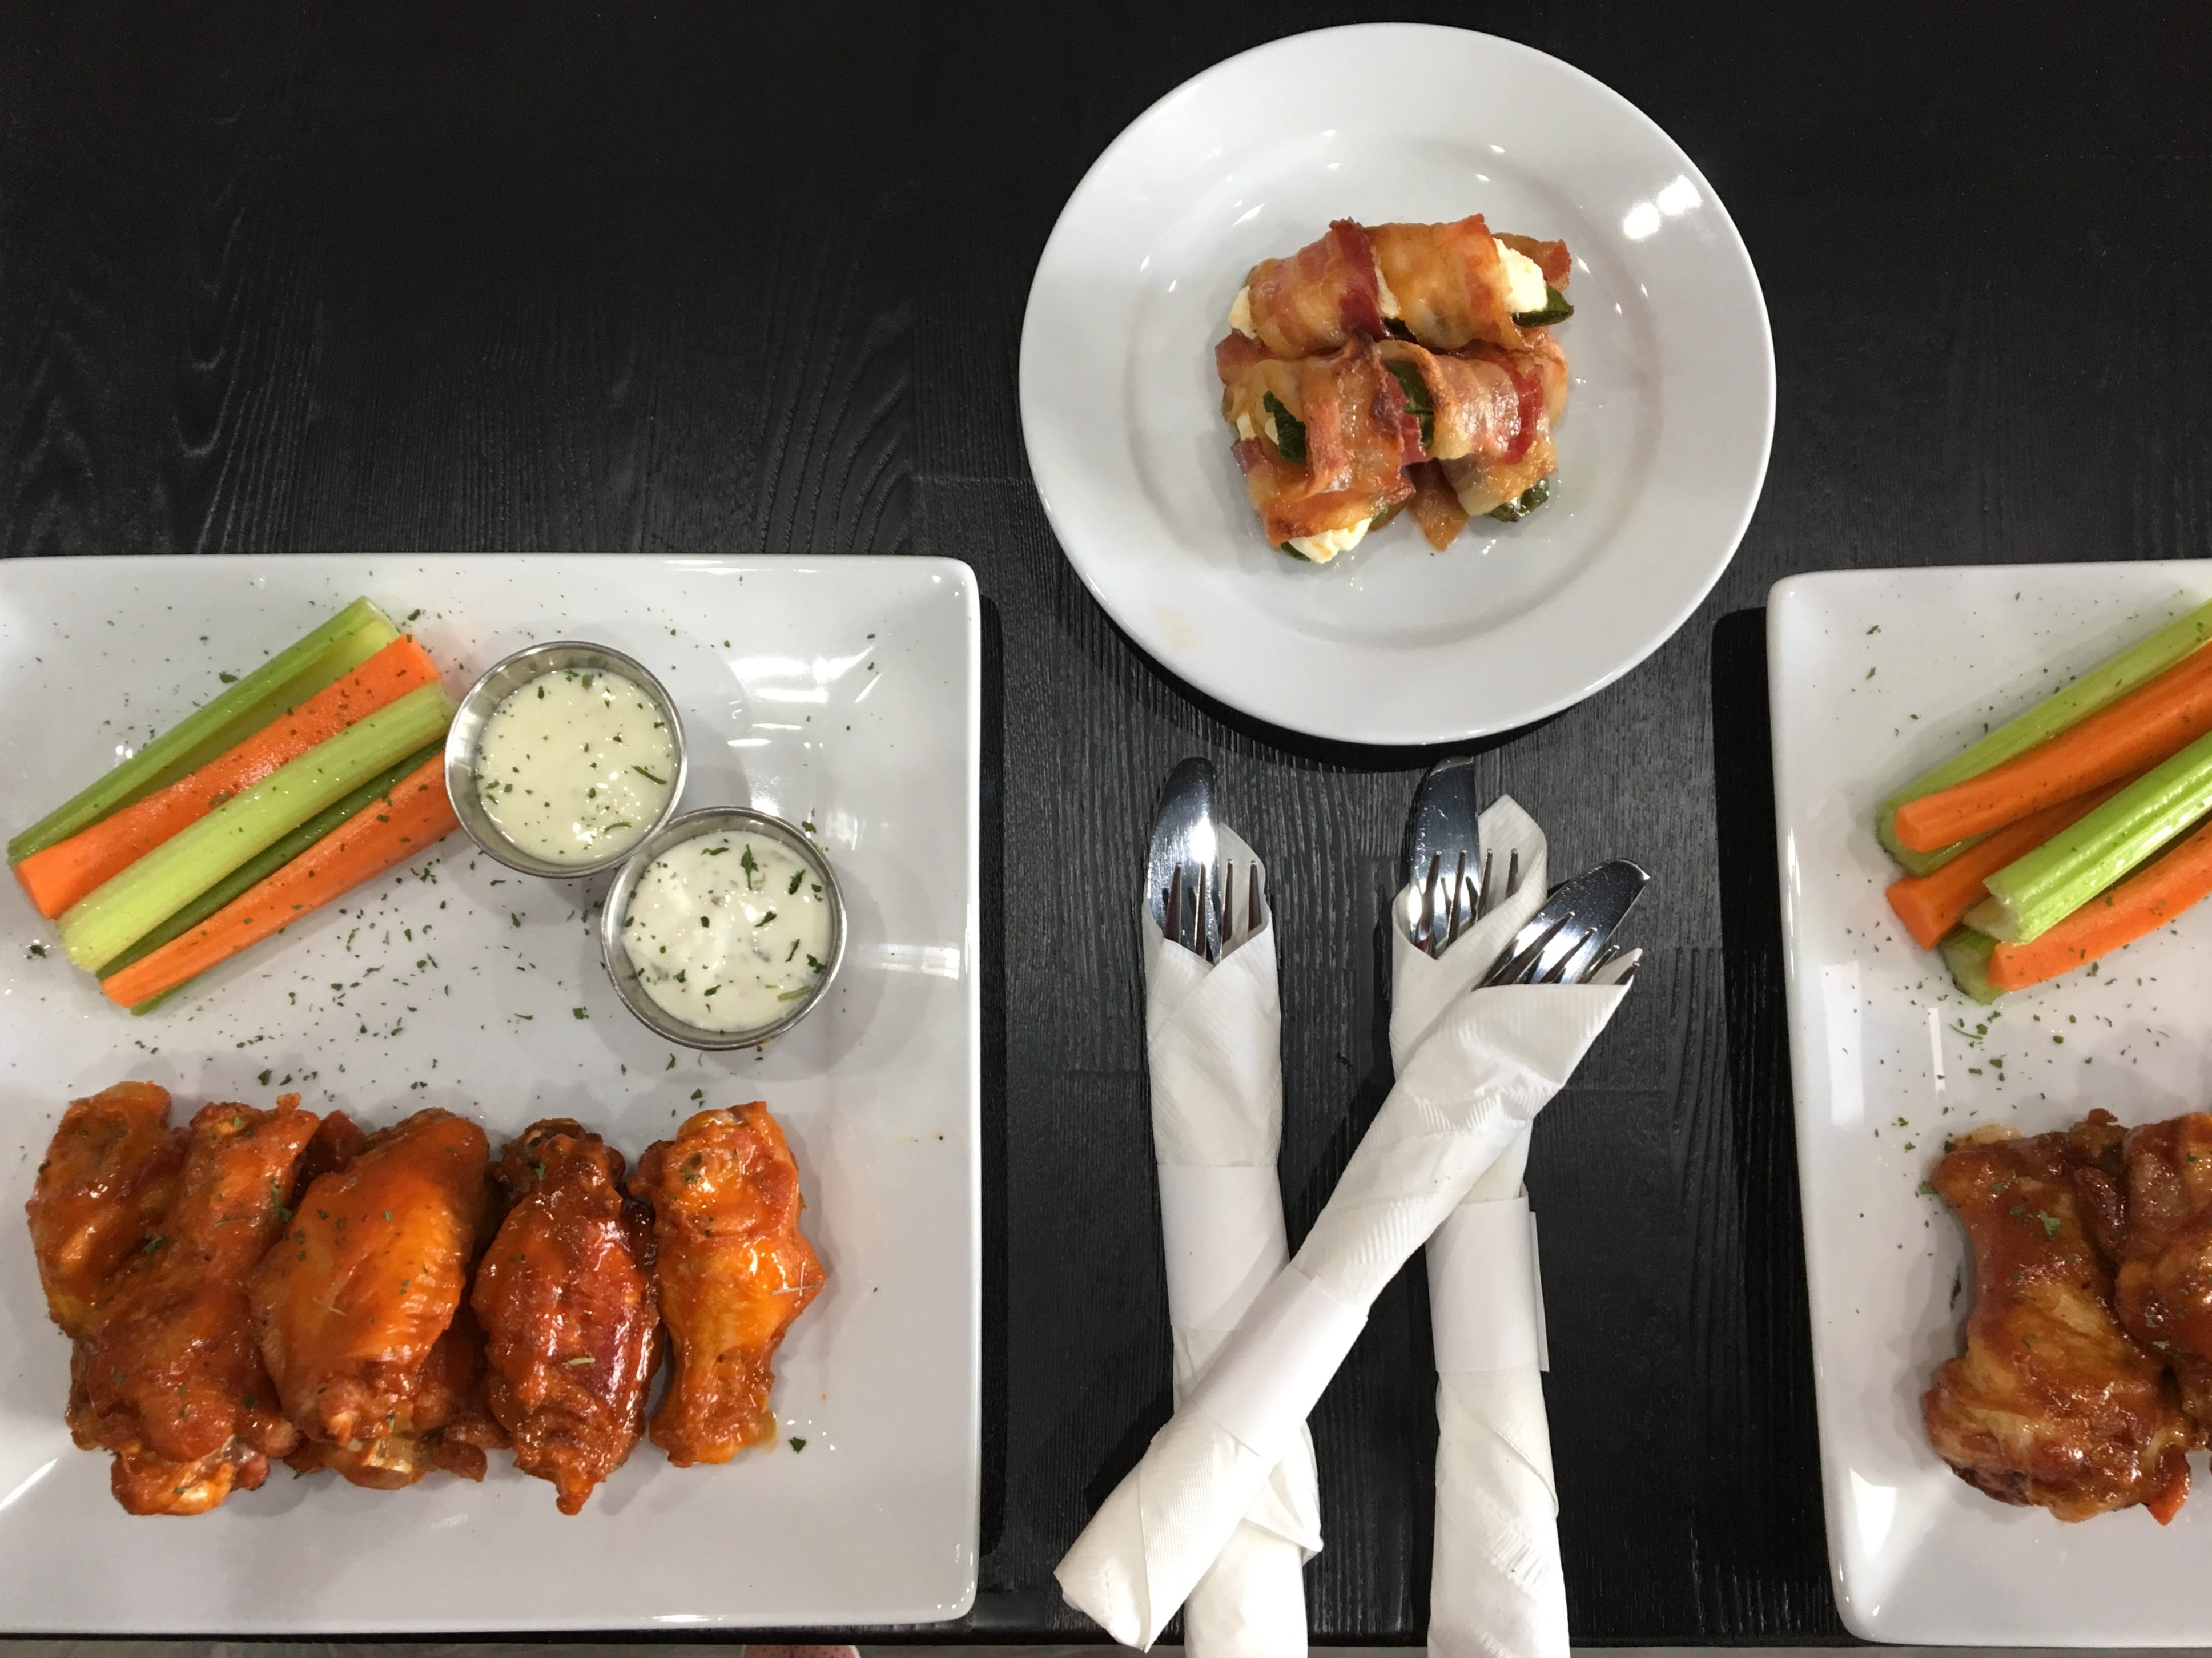 Orders of buffalo wings, left, barbecue wings, right, and bacon-wrapped roasted jalapenos, center top, are seen at Tap'd Ventura.